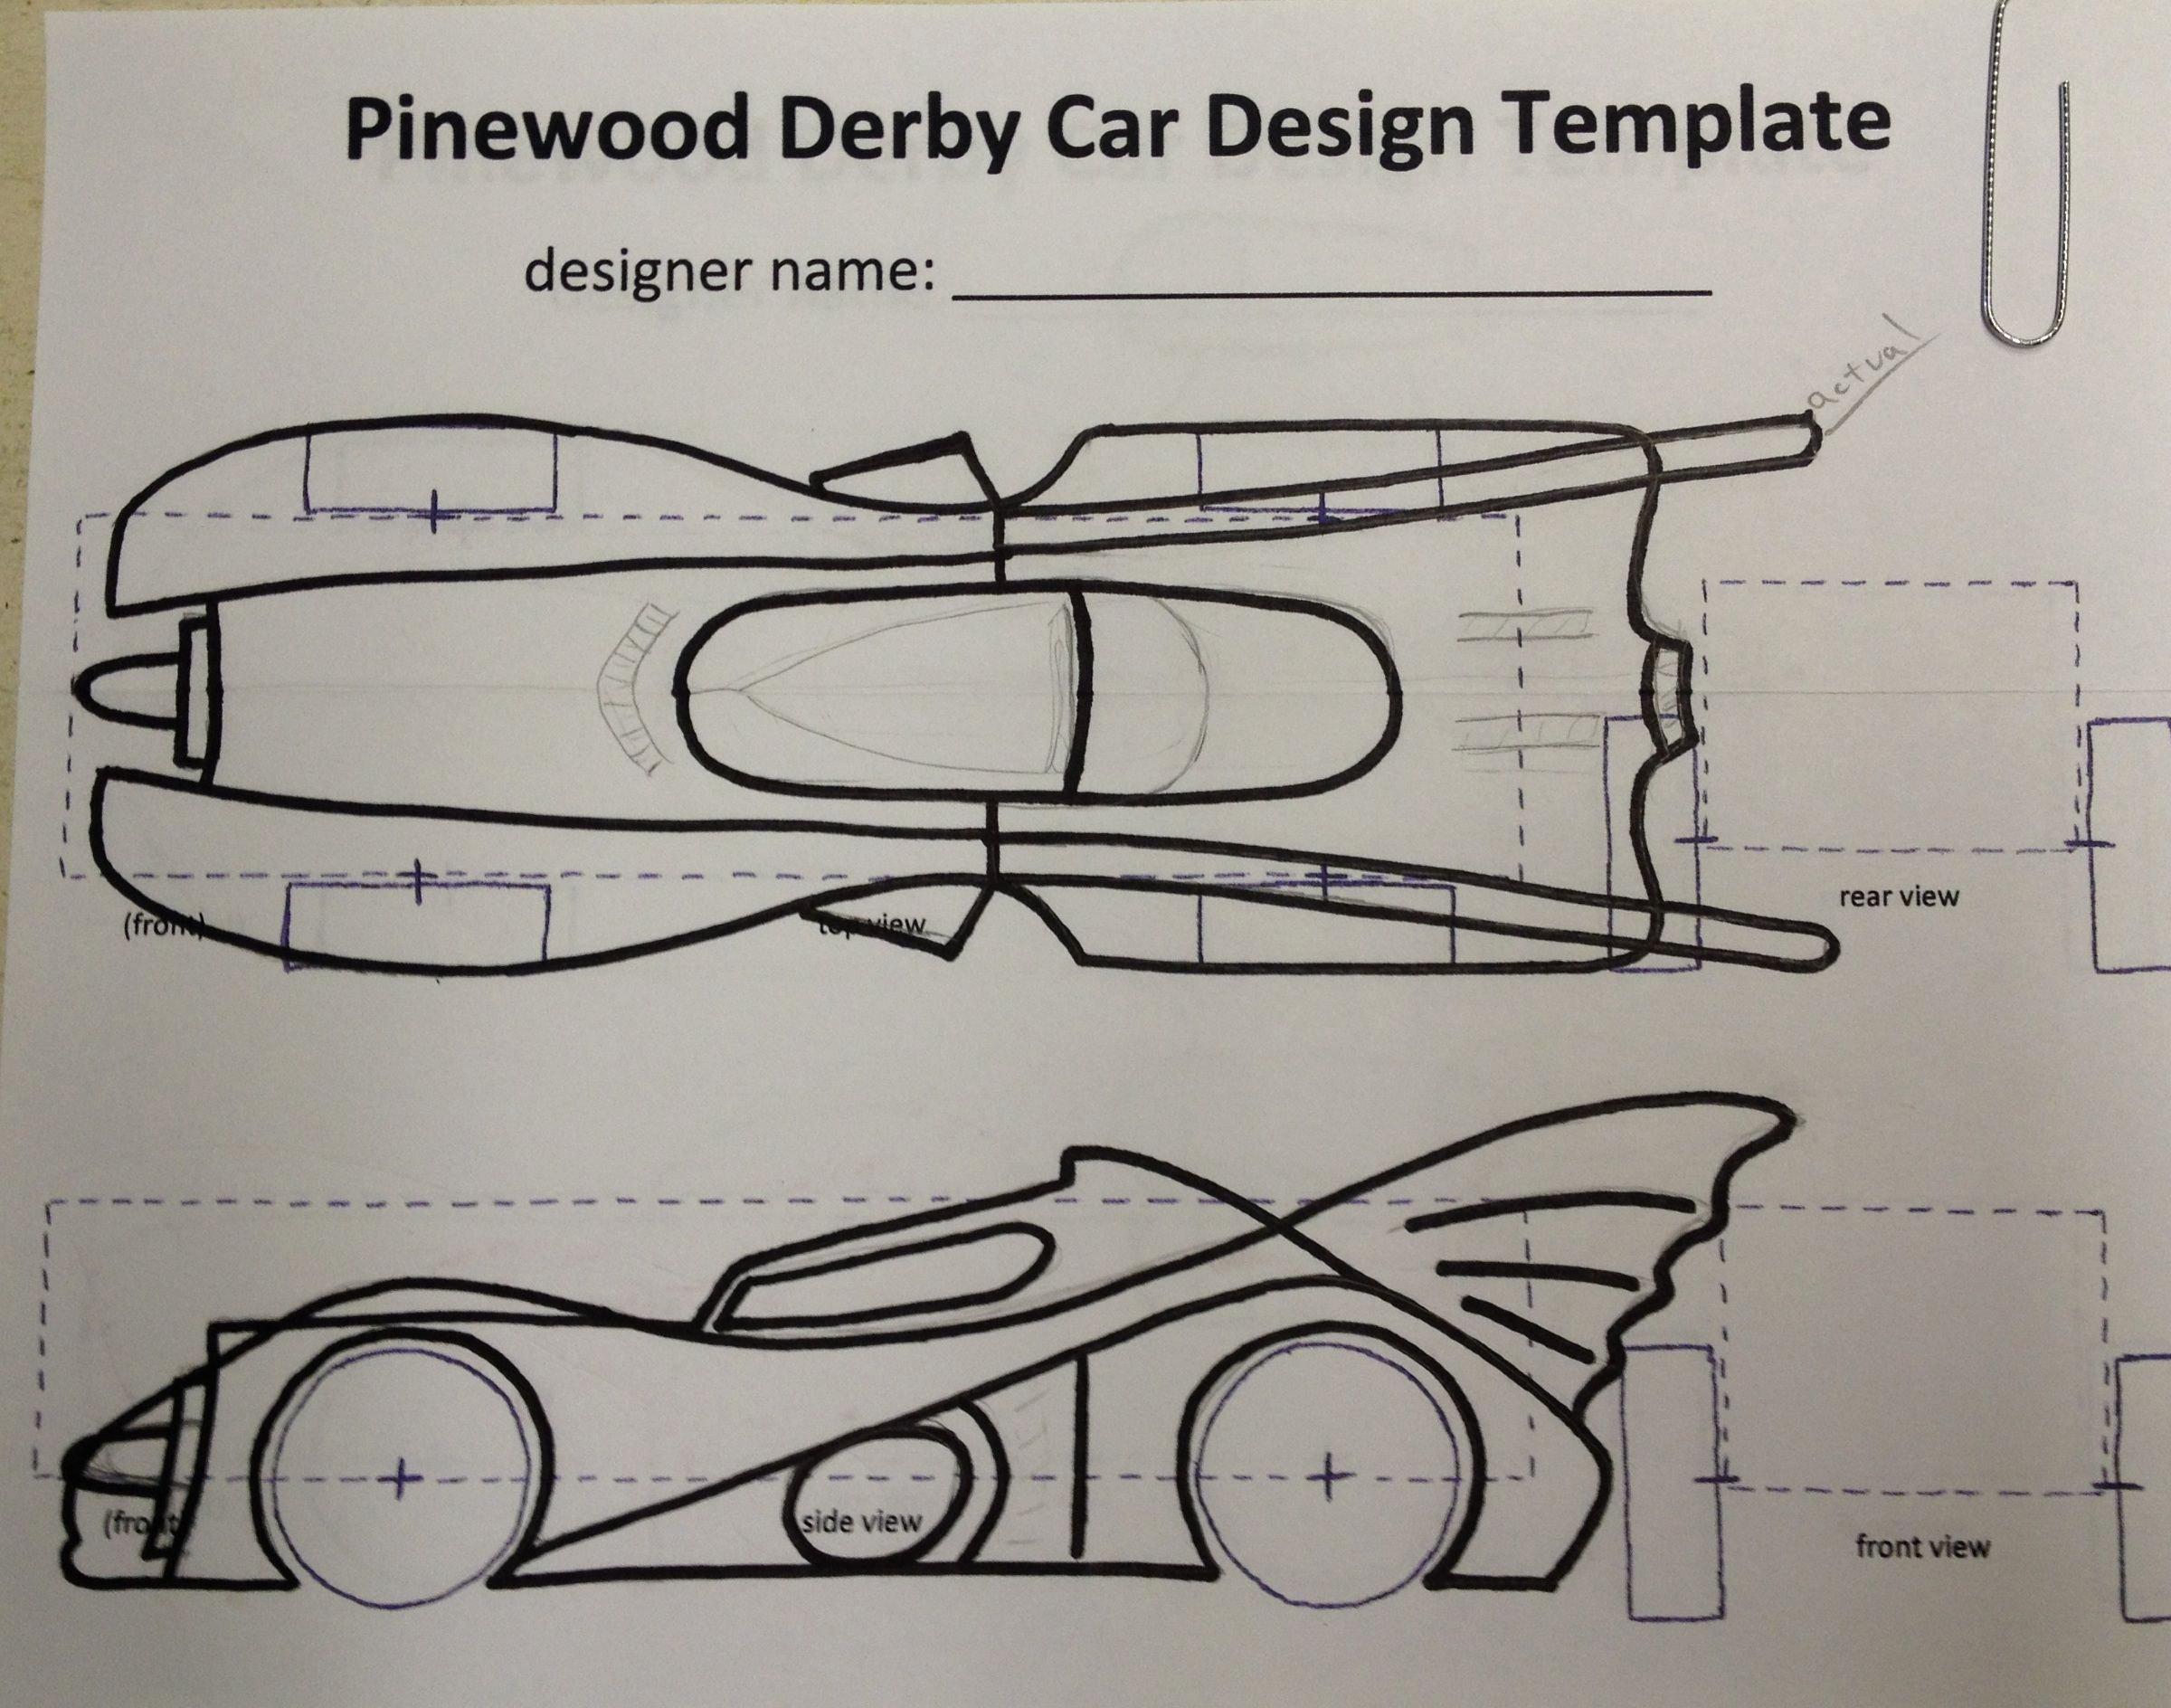 Pine Derby Car Templates Lovely I Started with some Scrap Pine 1×6 Wood that I Had Laying